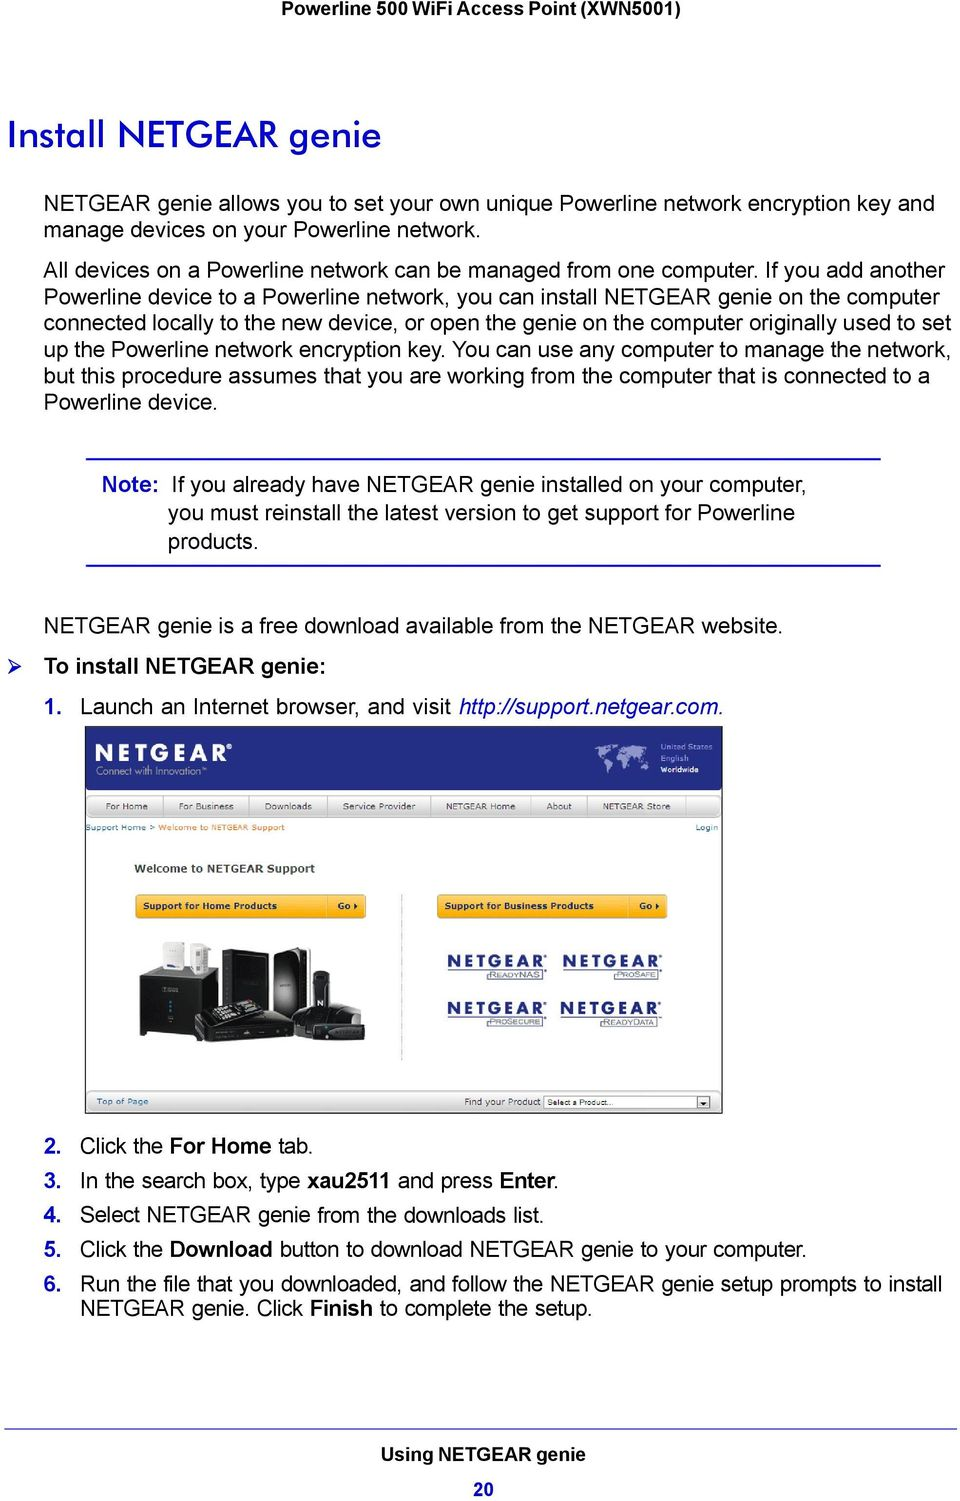 If you add another Powerline device to a Powerline network, you can install NETGEAR genie on the computer connected locally to the new device, or open the genie on the computer originally used to set